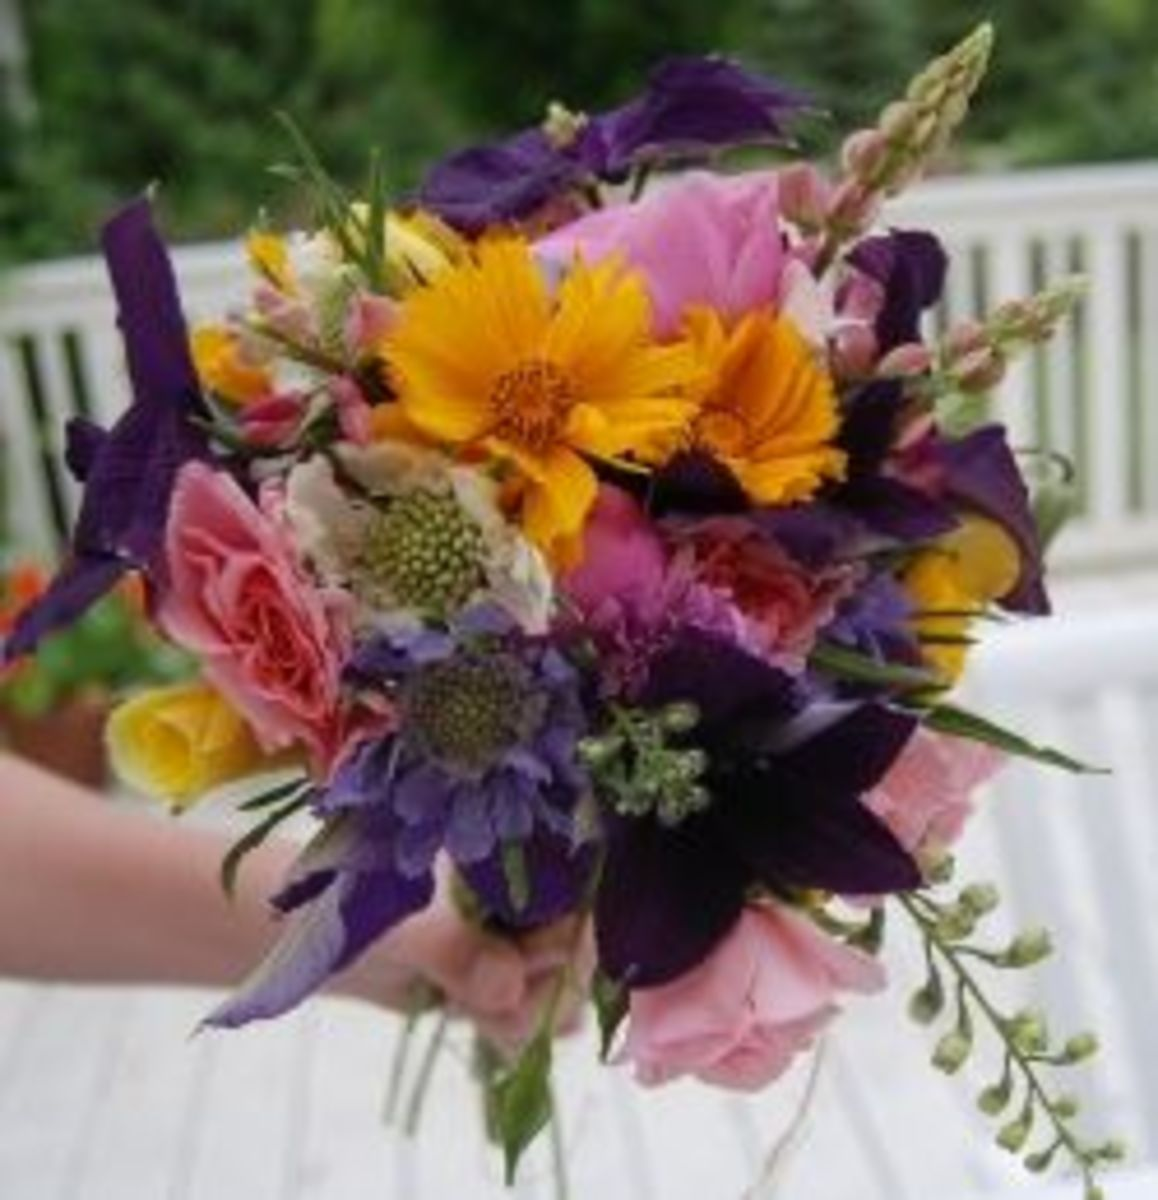 small fragrant bouquet of flowers